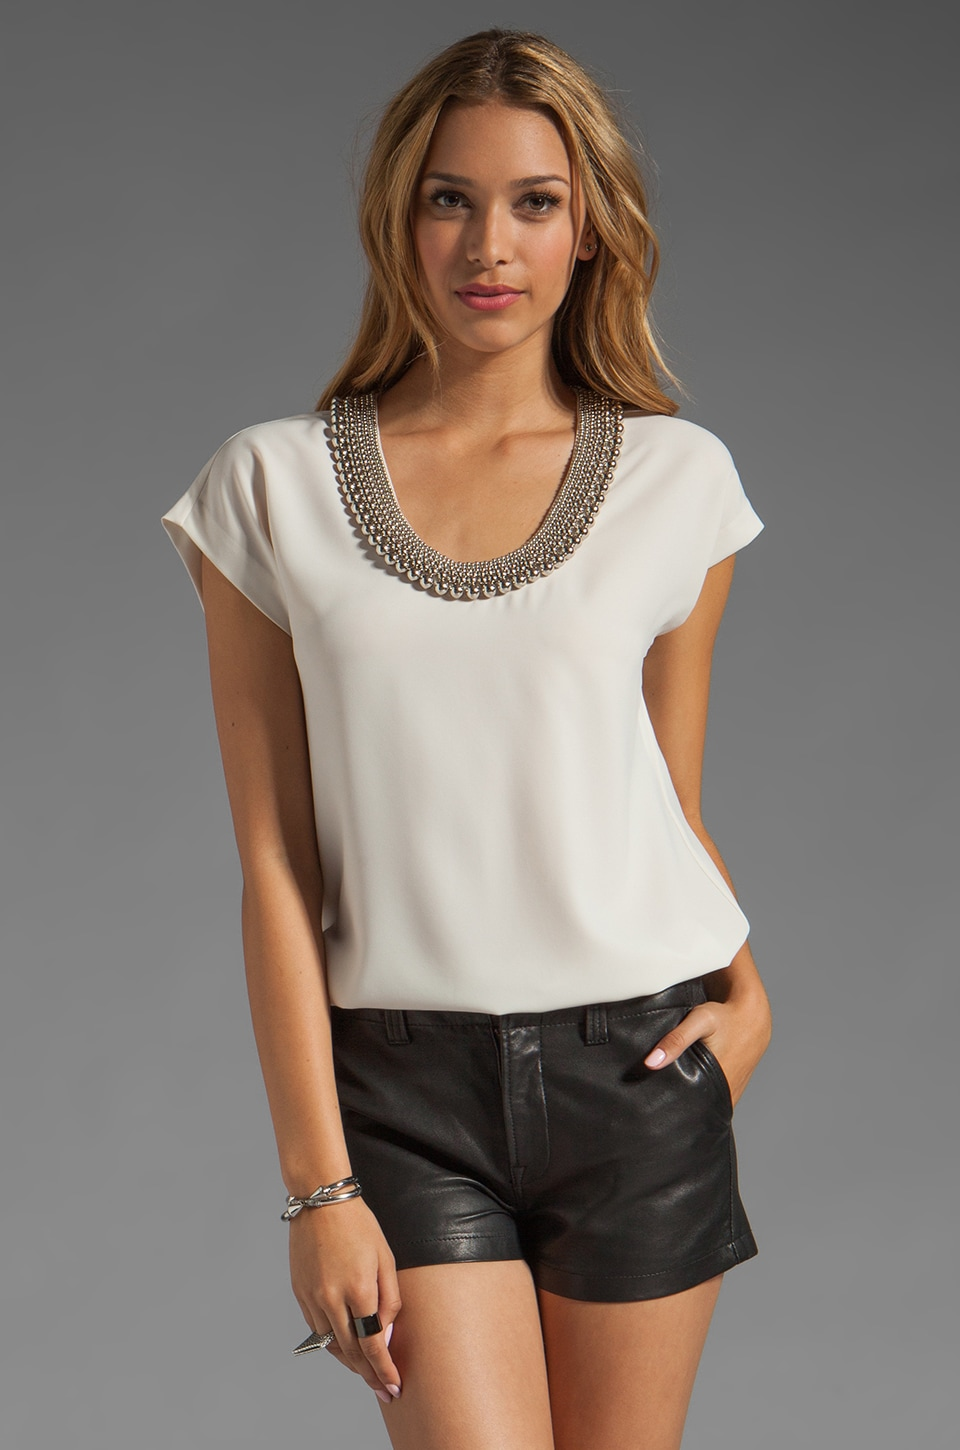 Diane von Furstenberg Acedia Silver Ball Top in Gingersnap